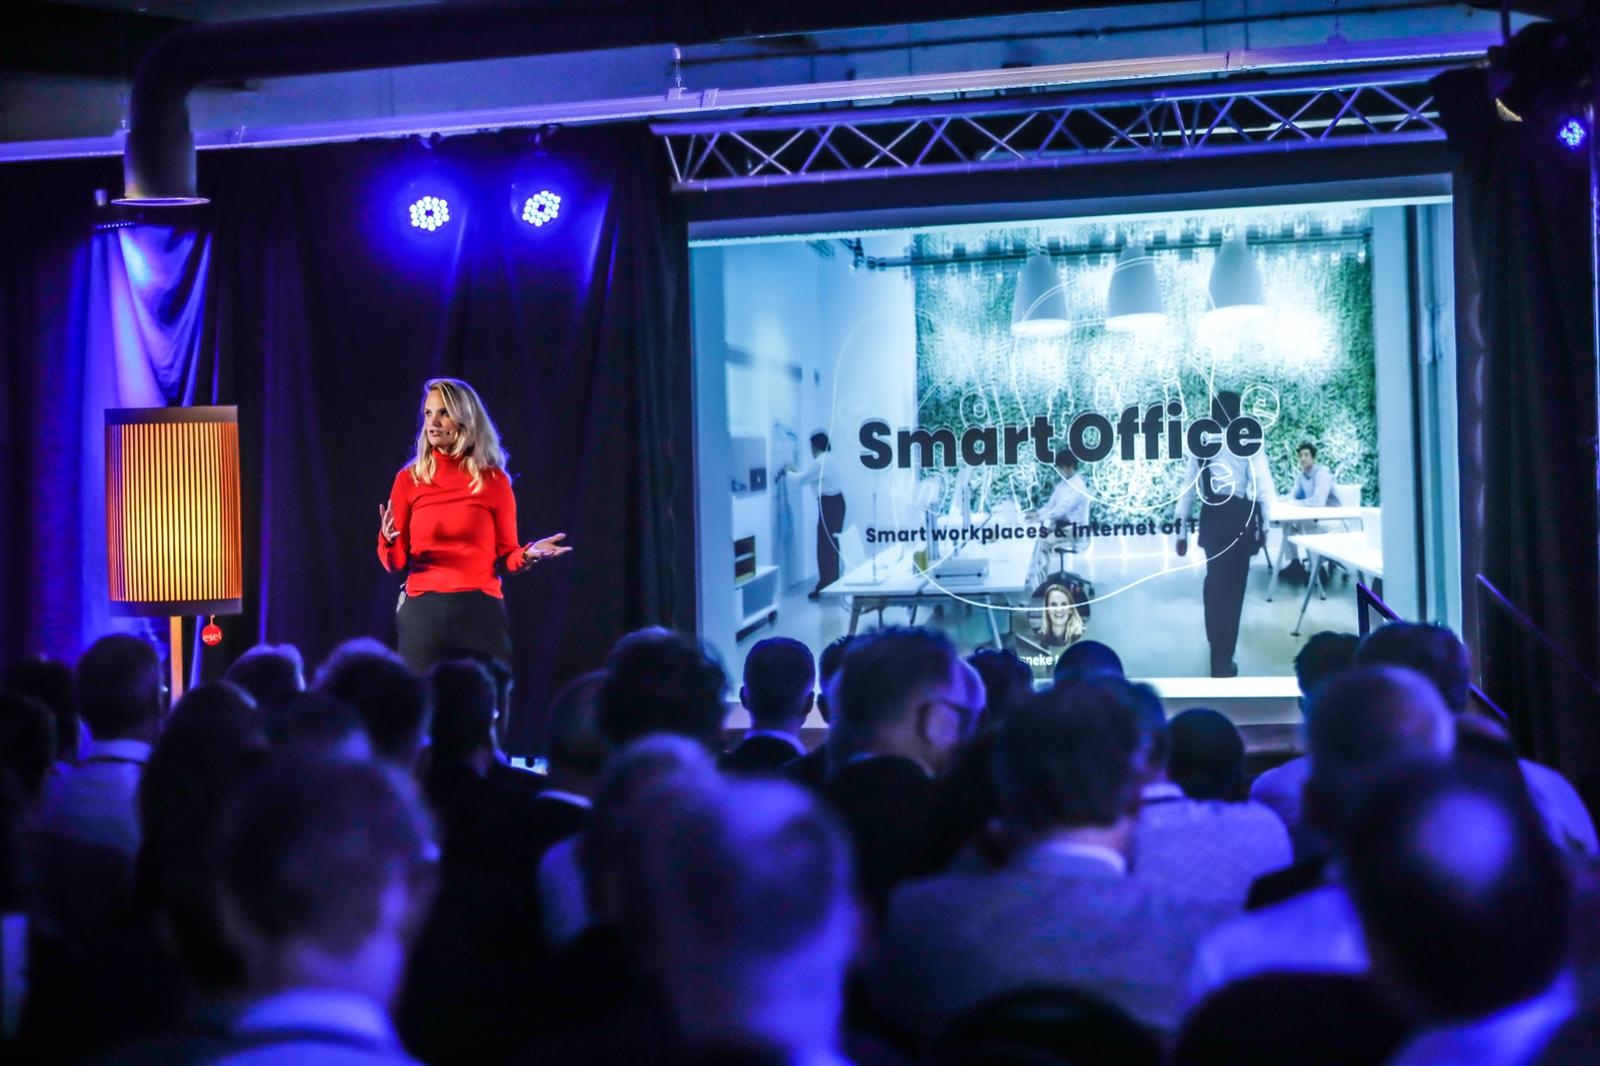 Hanneke presenteert Smart Offices